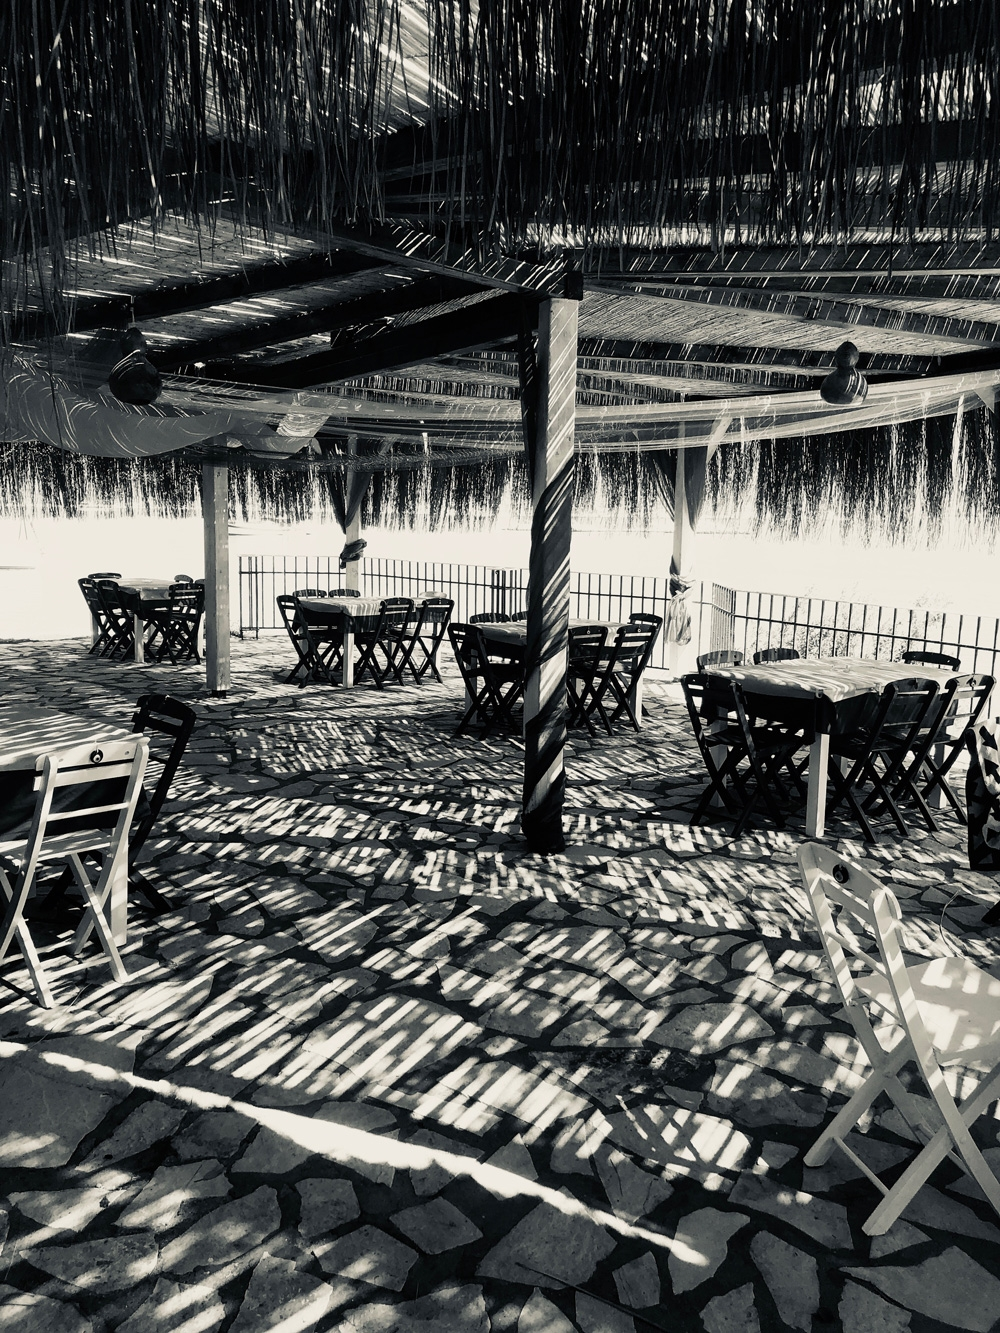 A black and white image of Saint George Beach Club displays wooden tables and chairs underneath a large straw roof next to the ocean